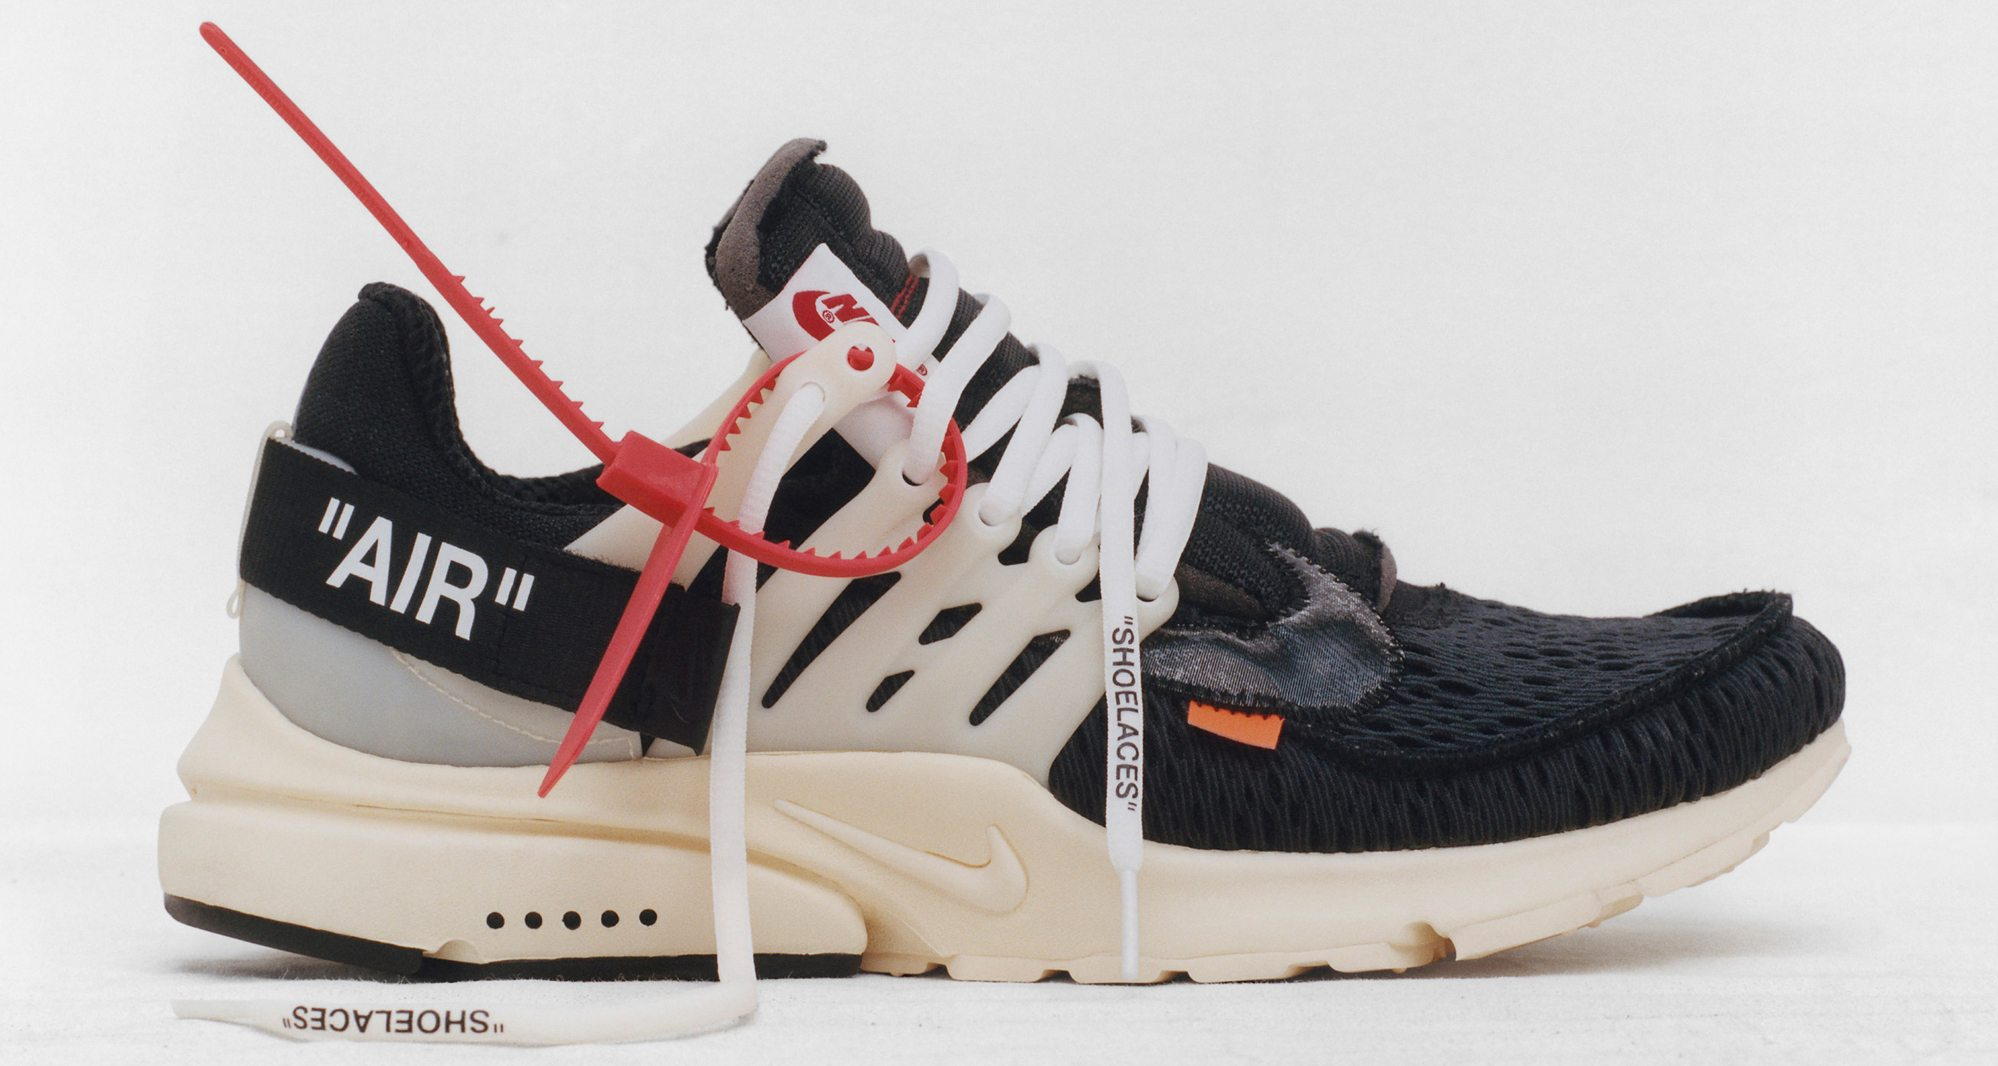 off white x nike air presto release date nice kicks. Black Bedroom Furniture Sets. Home Design Ideas